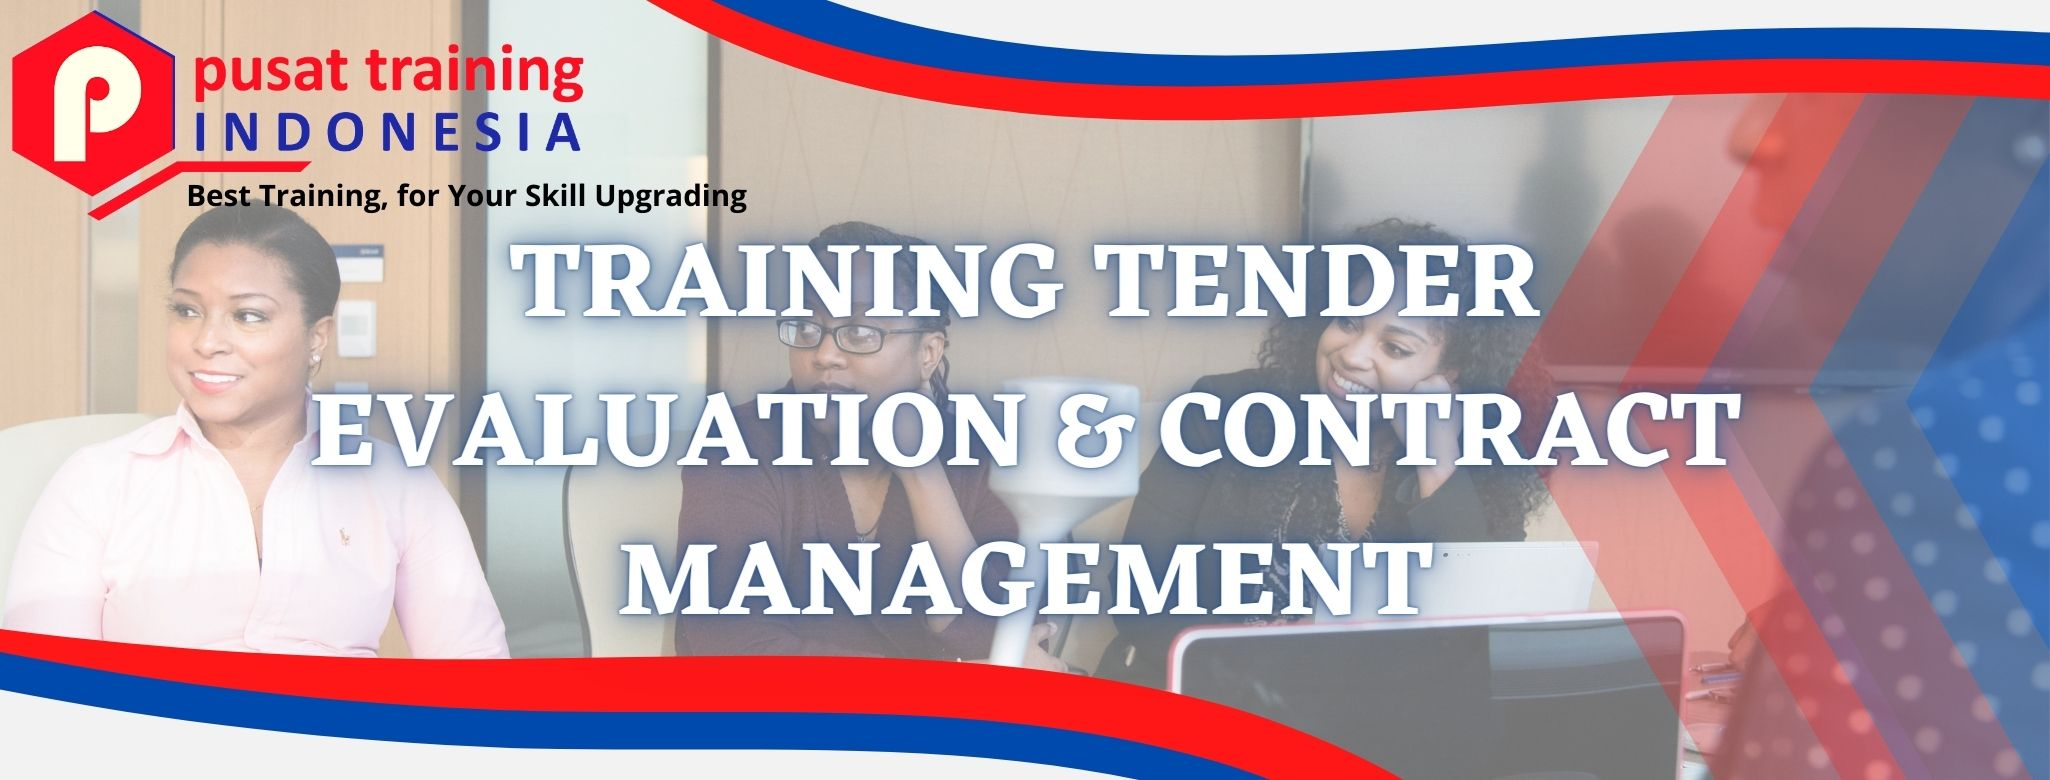 TRAINING TENDER EVALUATION & CONTRACT MANAGEMENT